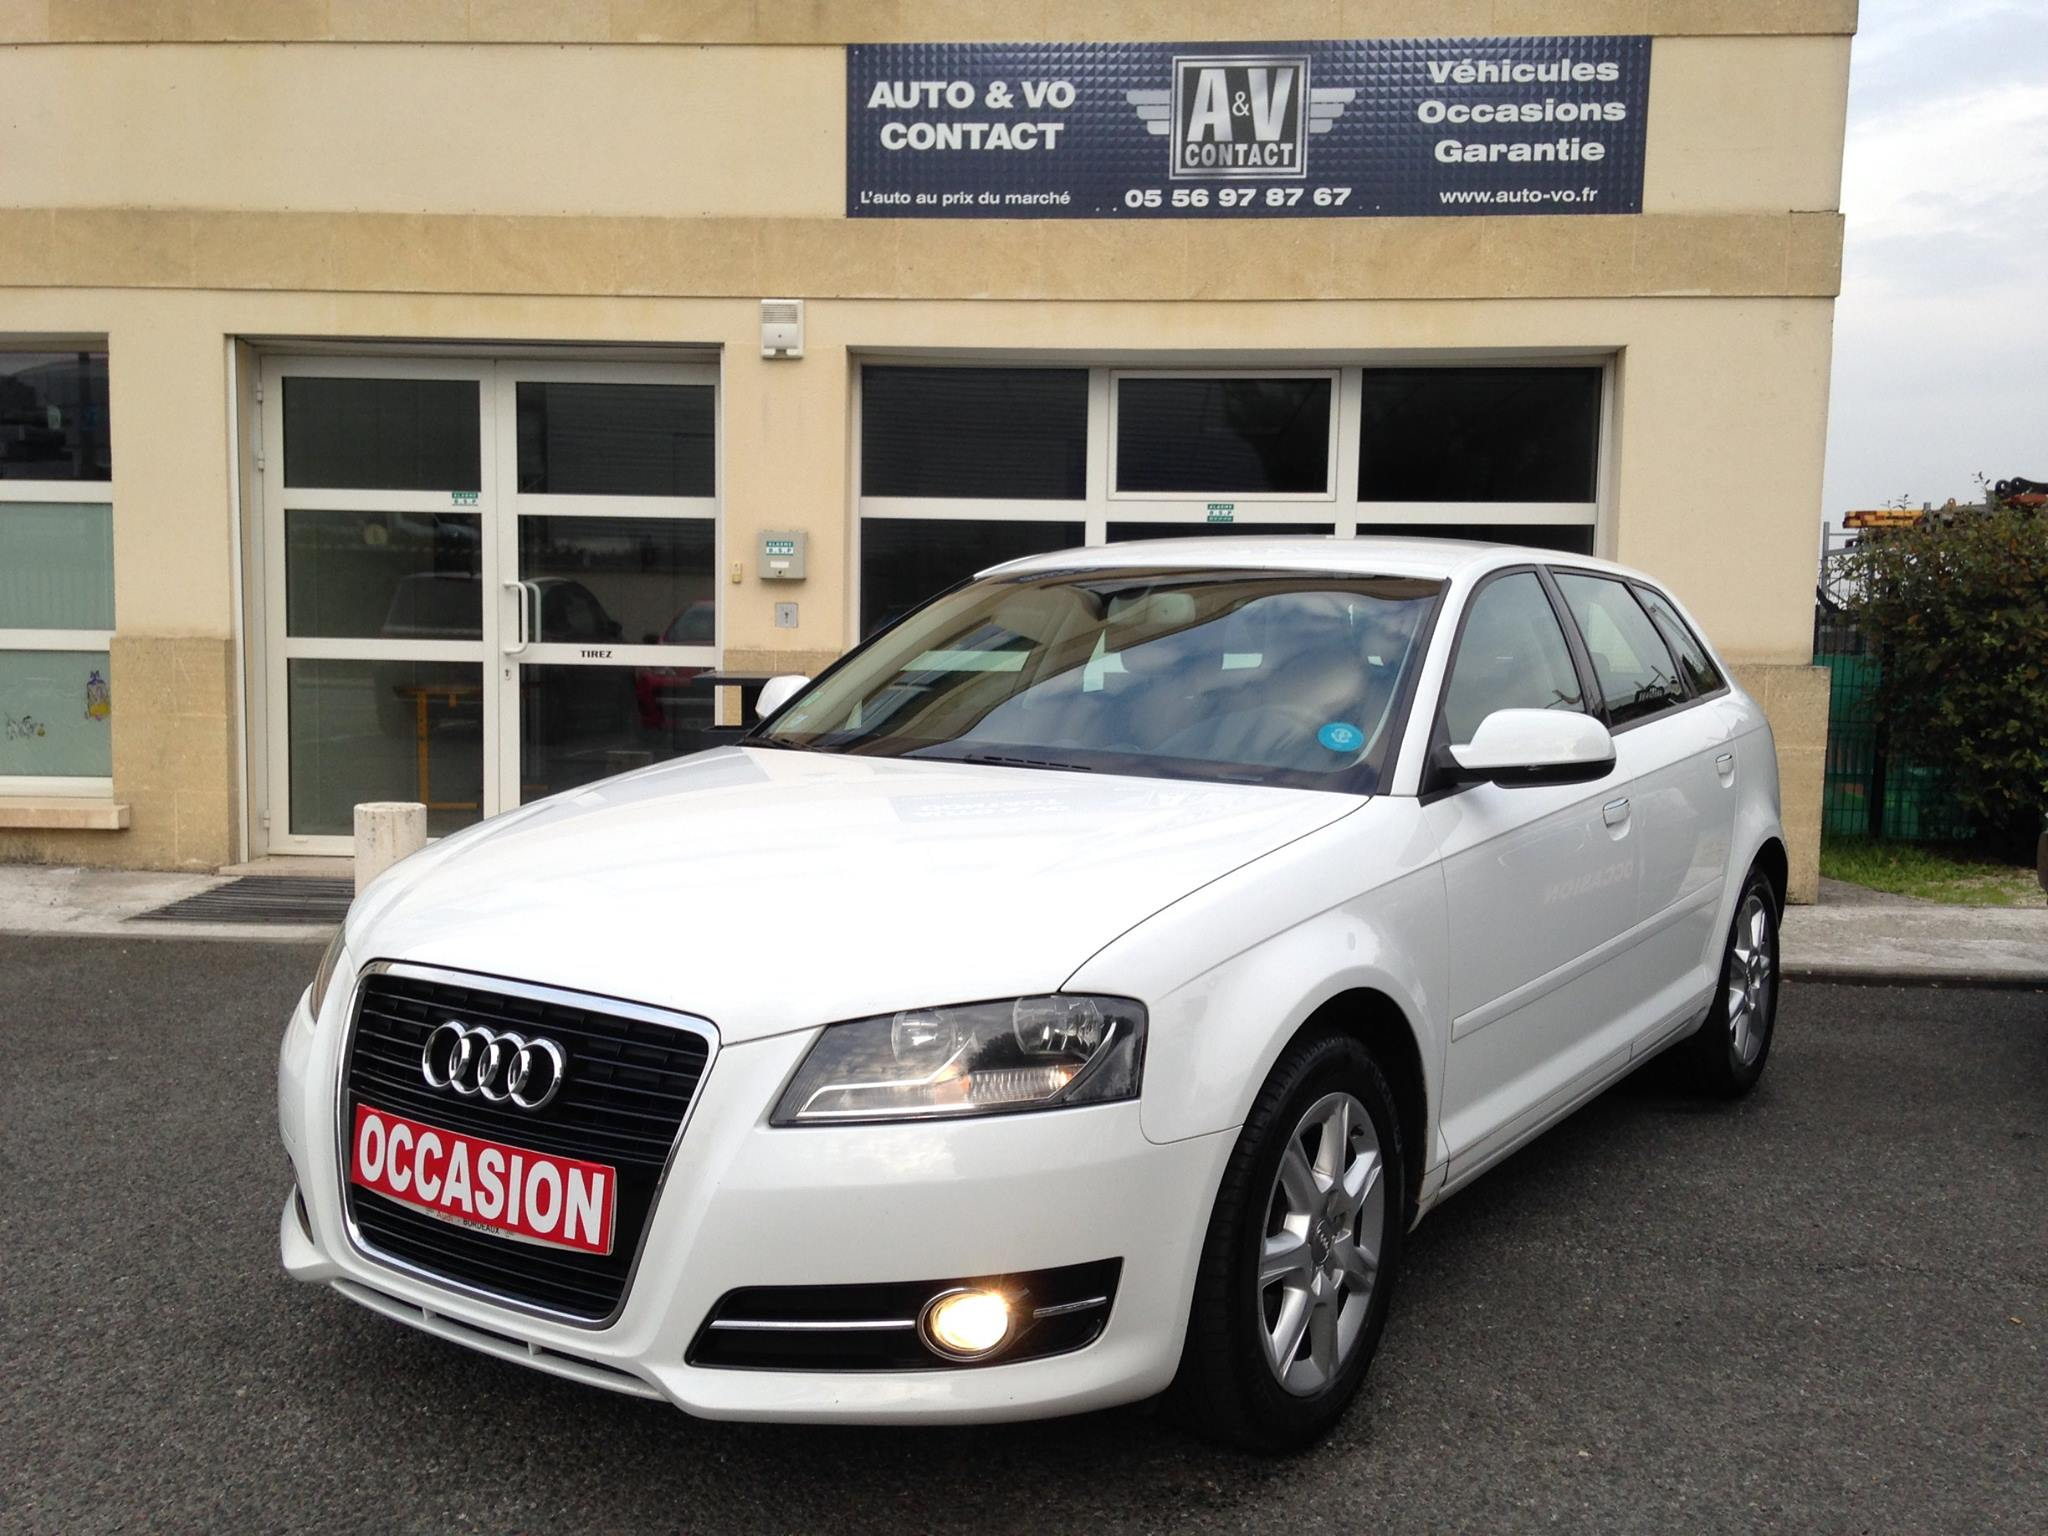 audi a3 sportback 1 6 tdi 105 ambition s tronic de juin 2011 91 150 kms vendu sarl auto. Black Bedroom Furniture Sets. Home Design Ideas